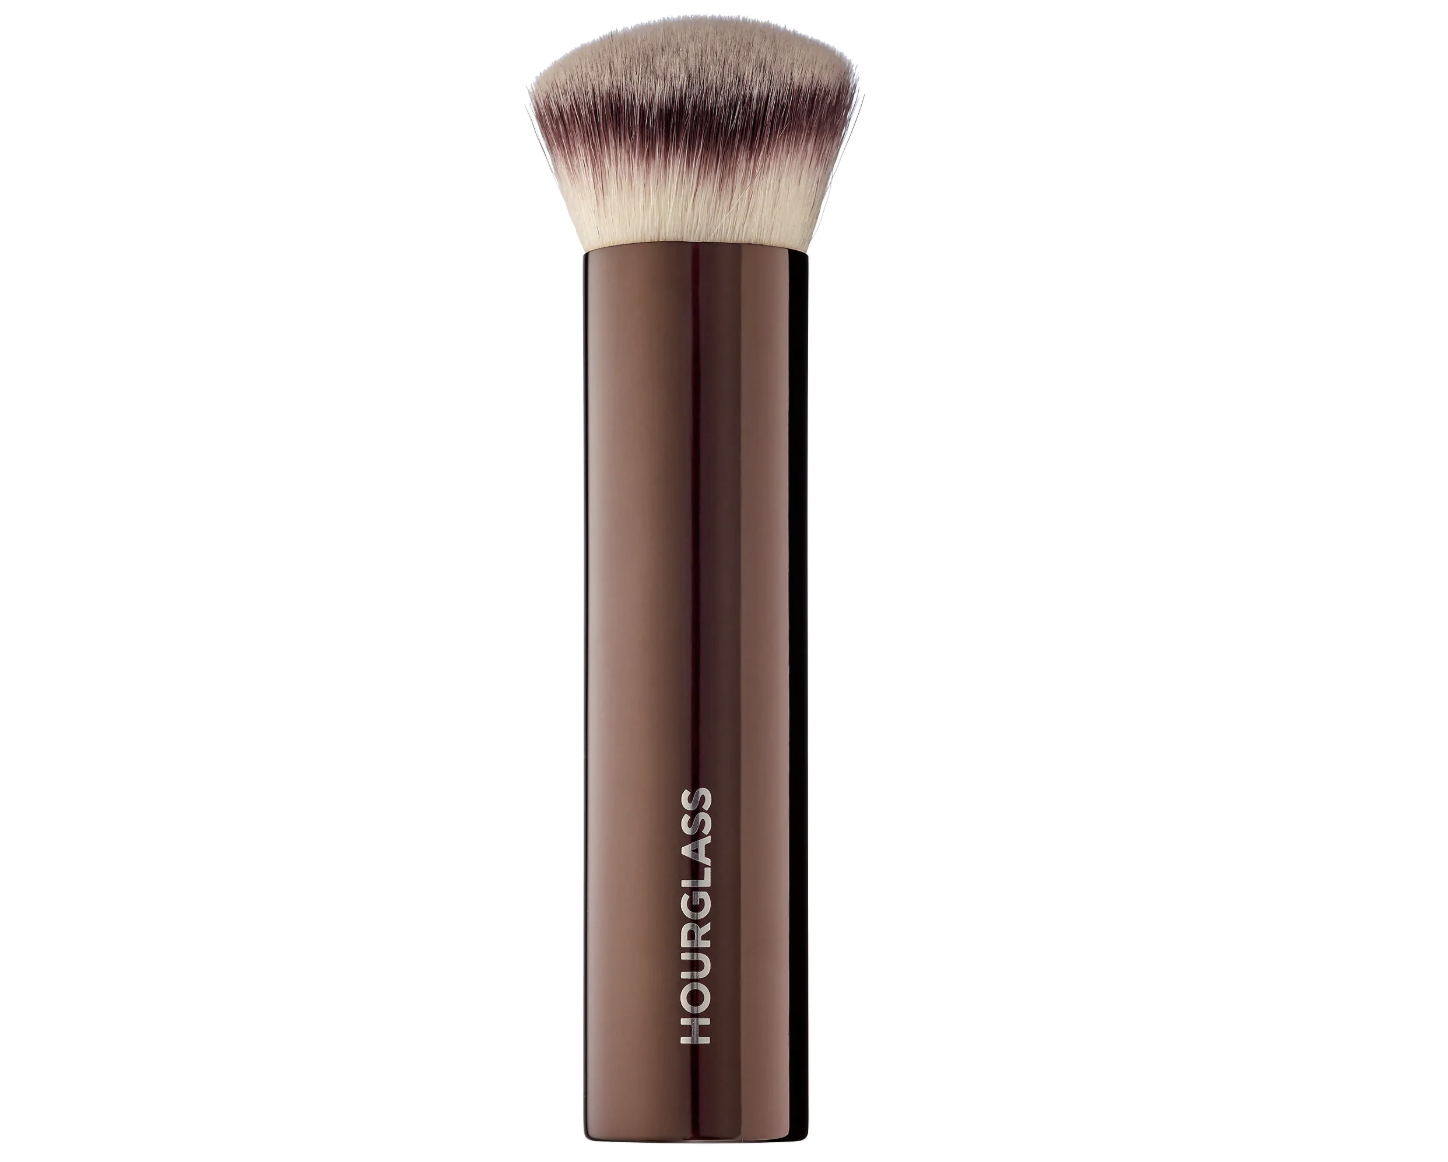 Hourglass Foundation Brush